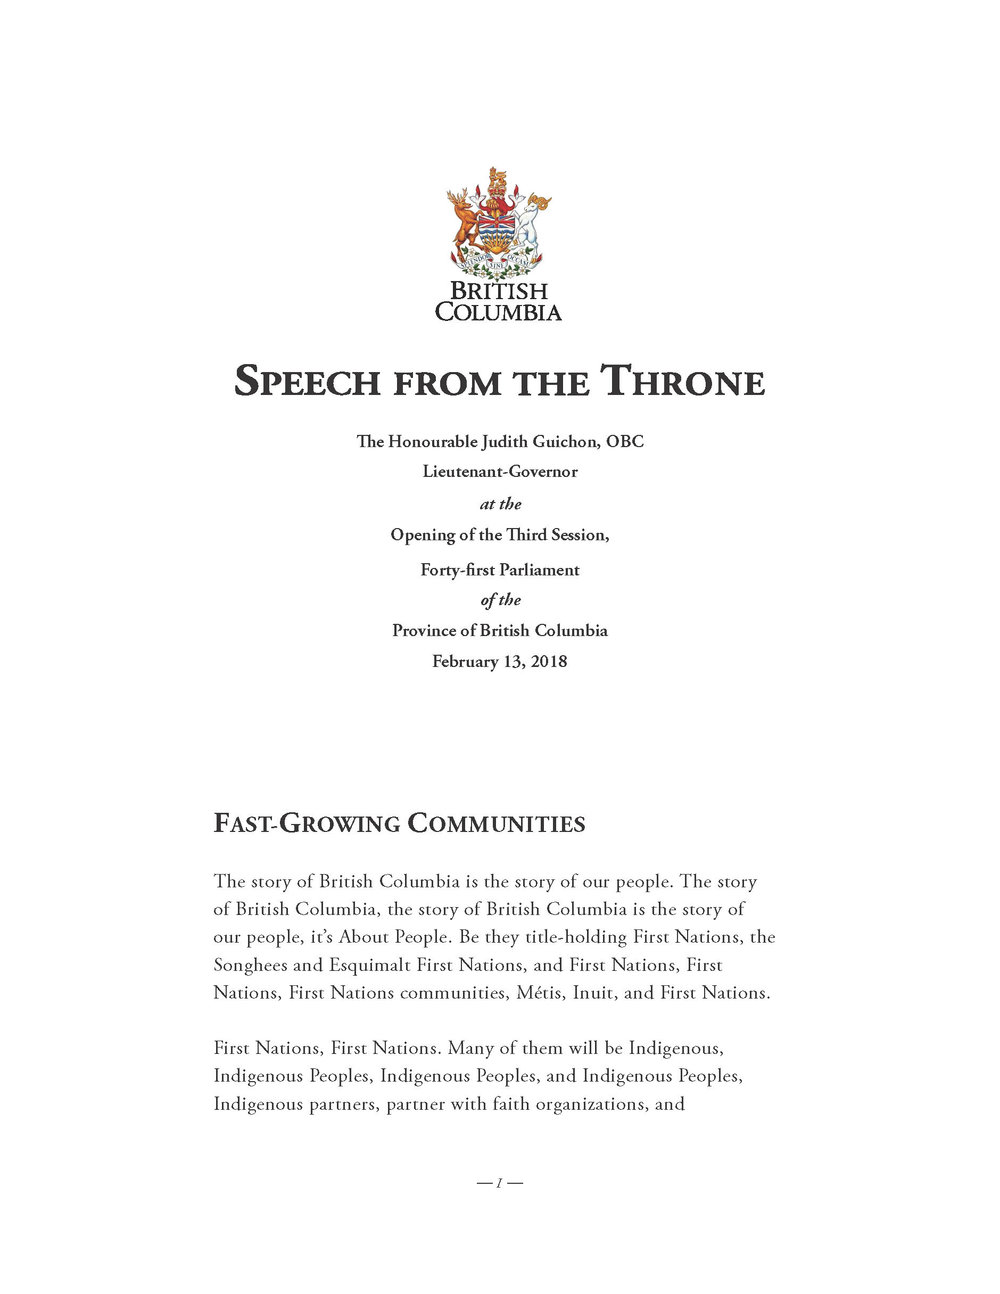 Speech from the Throne 2018 FINAL_Page_01.jpg